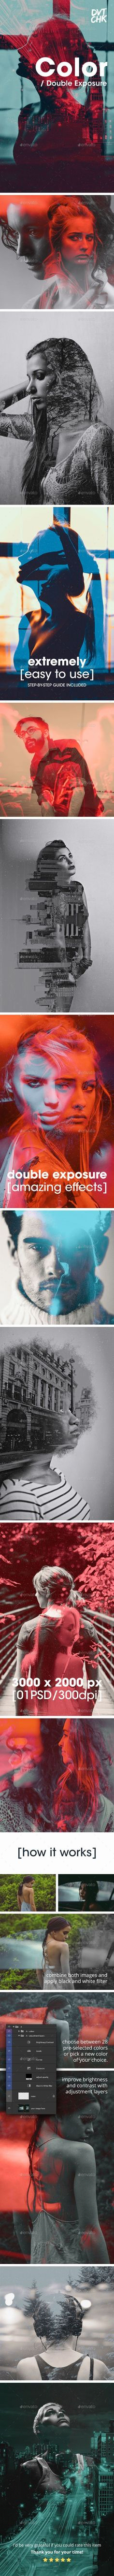 Color - Double Exposure Photoshop Photo Template. Photoshop tips. Nordic360.